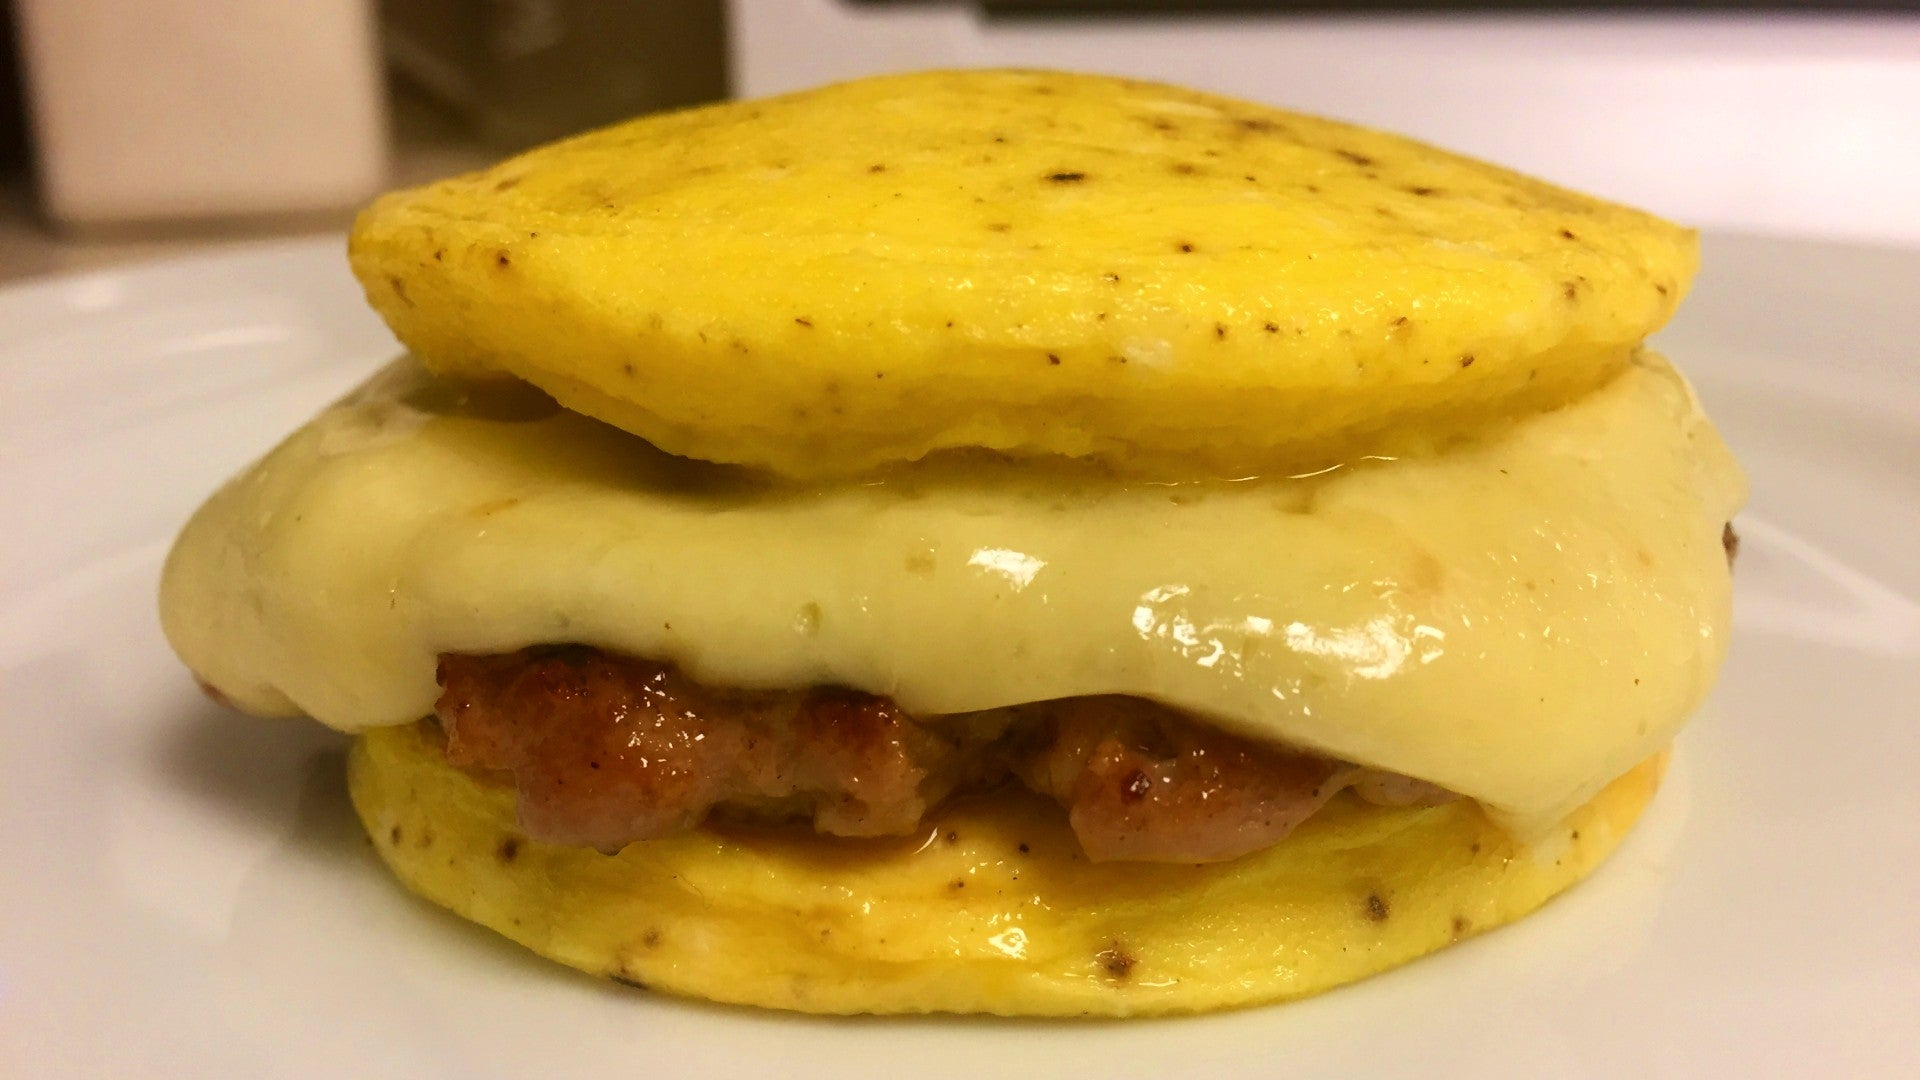 How To Make Jimmy Dean 'Eggwiches'